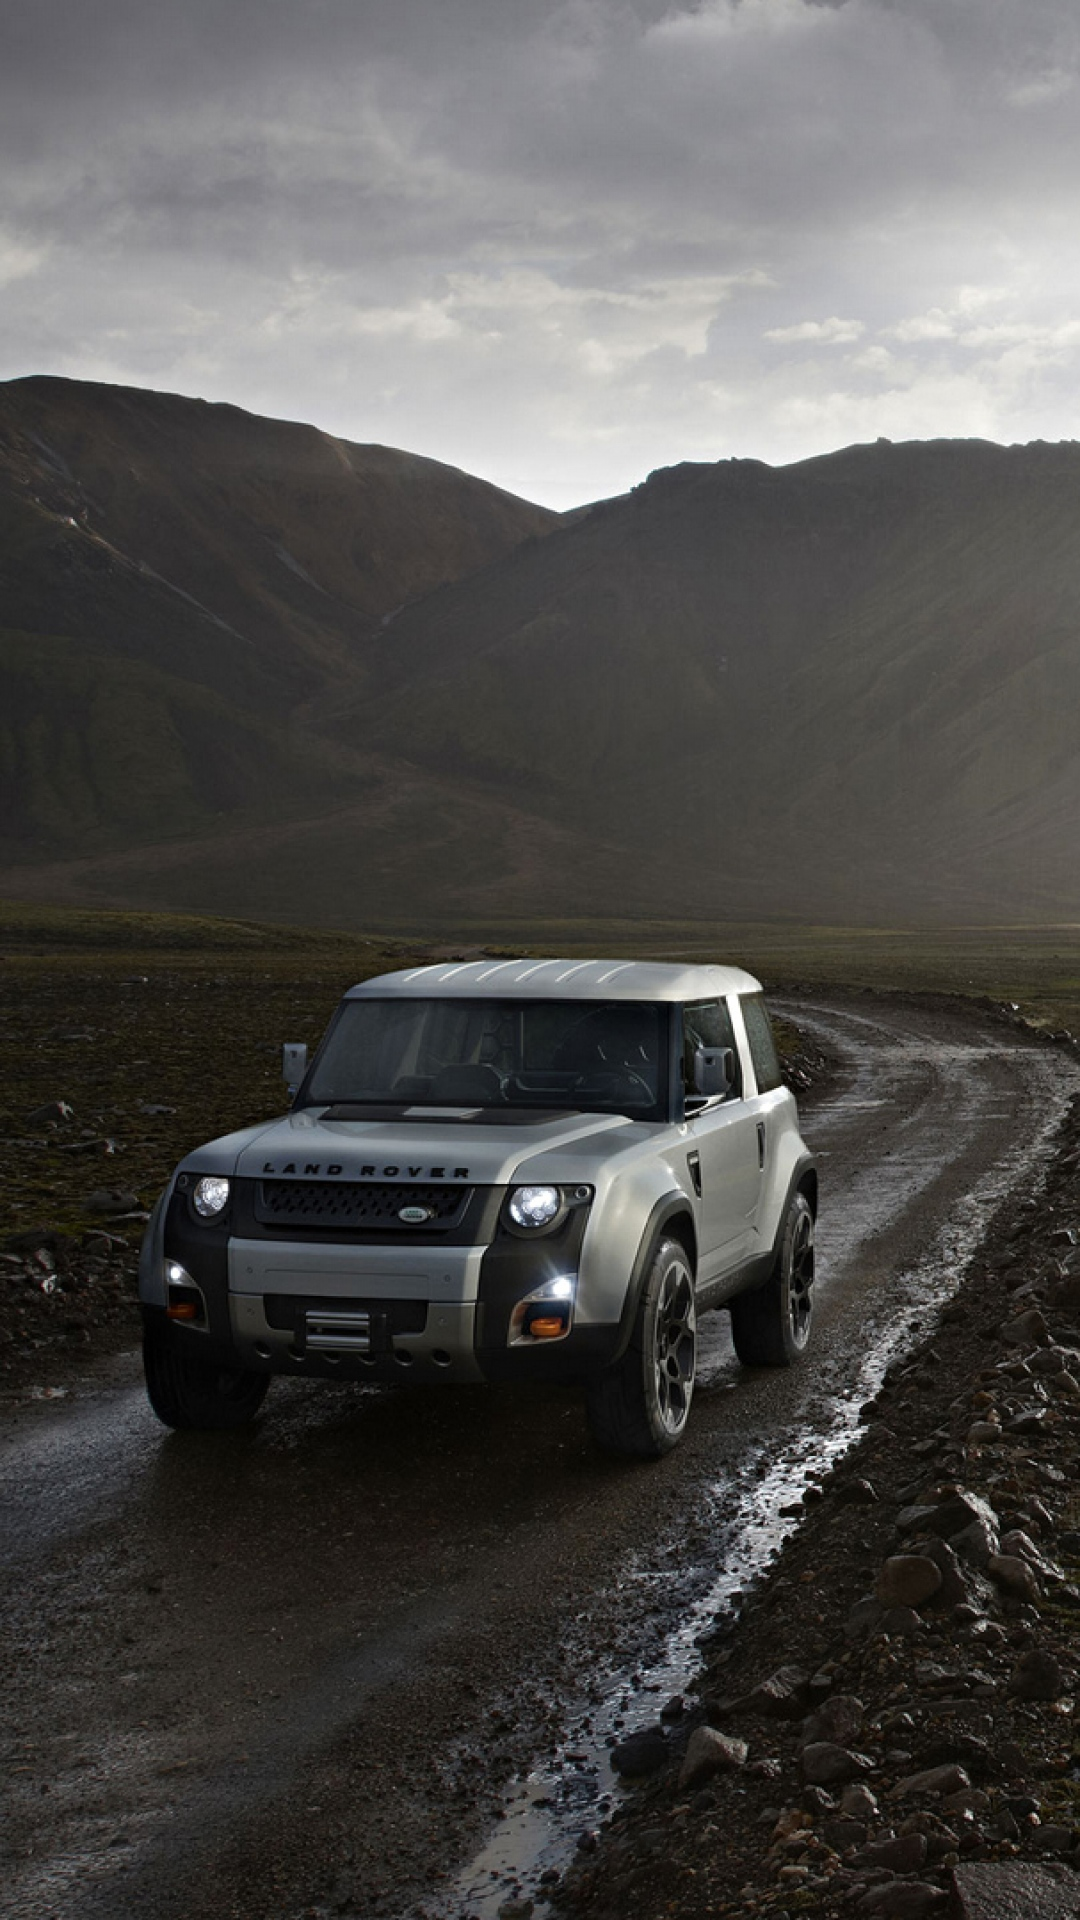 iphone wallpaper land rover dc100 side view mud suv SUV